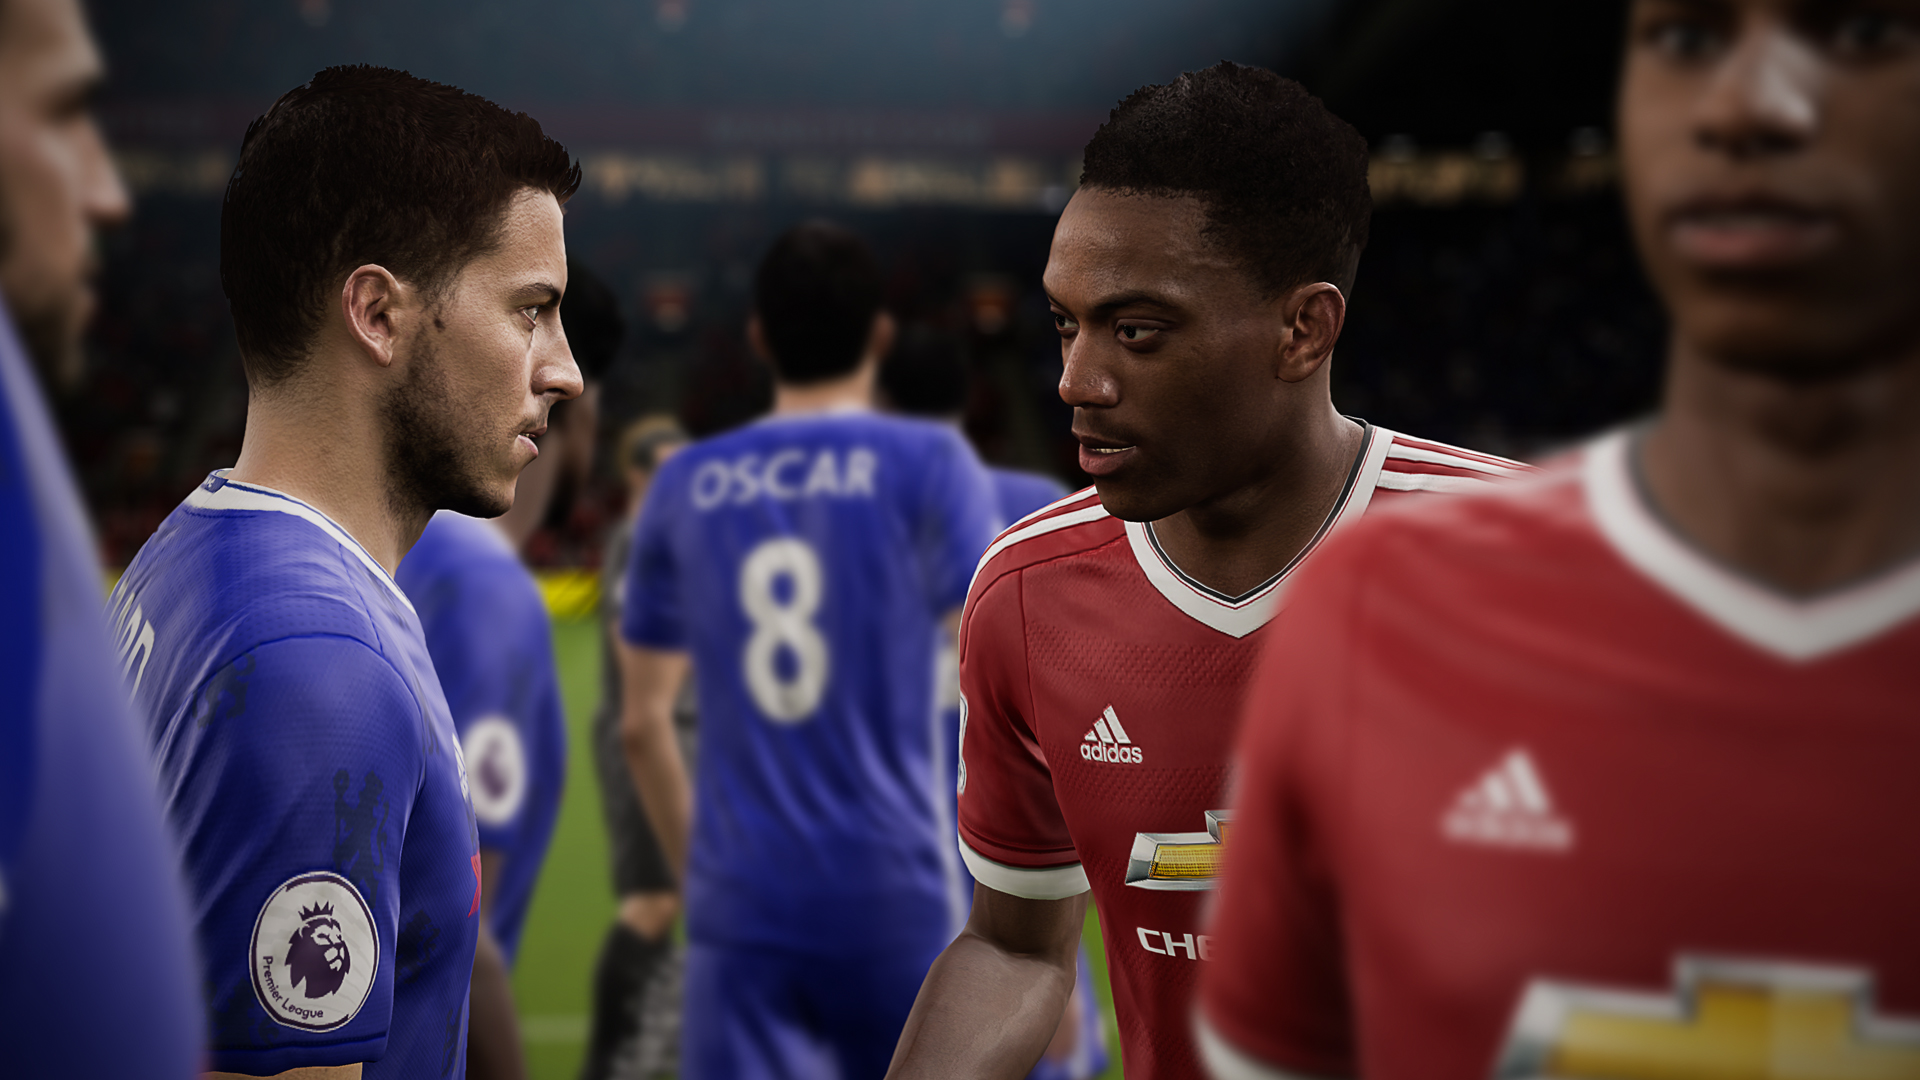 FIFA17 XB1 PS4 EAPLAY MARTIAL HAZARD LINEUP NO WM1 The Science Behind FIFA 17 Player Ratings